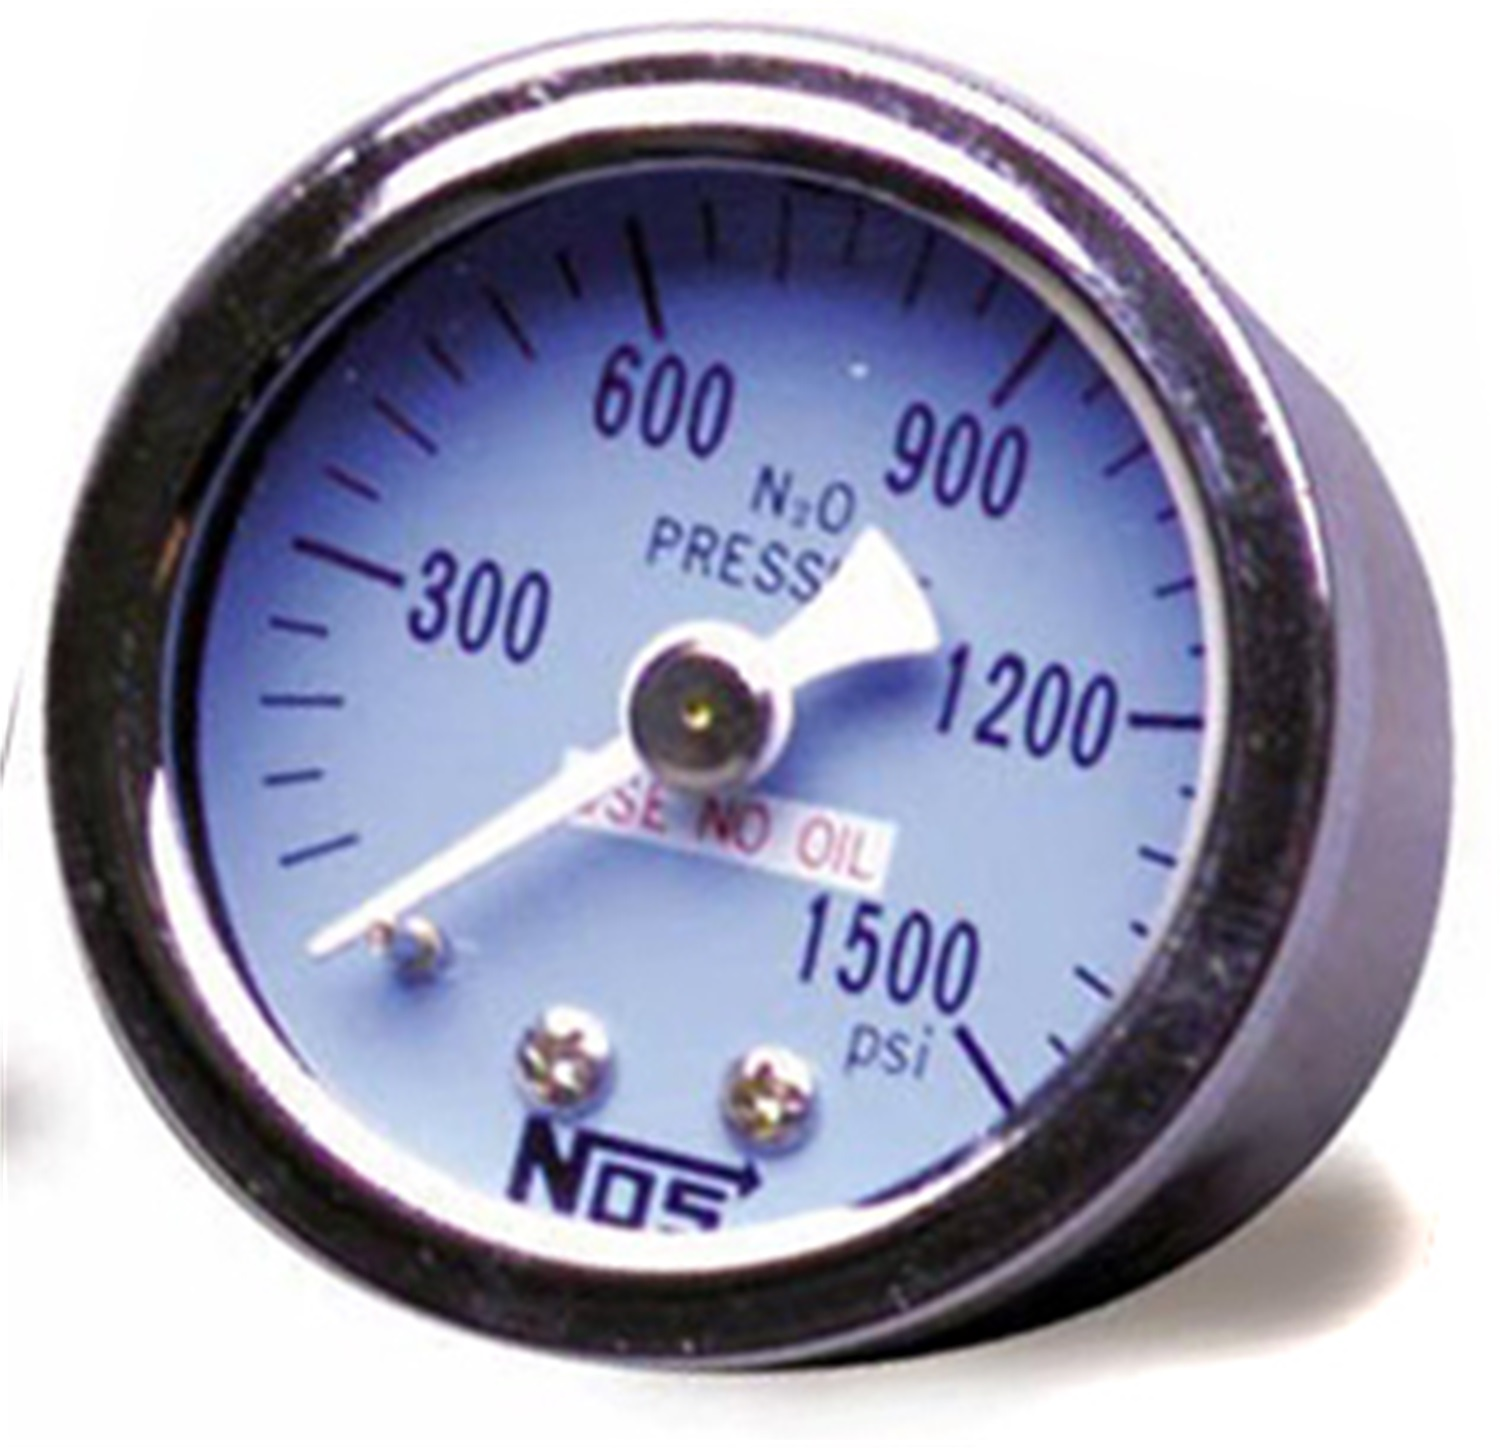 Nitrous Pressure Gauge Replacement Auto Part, Easy to Install